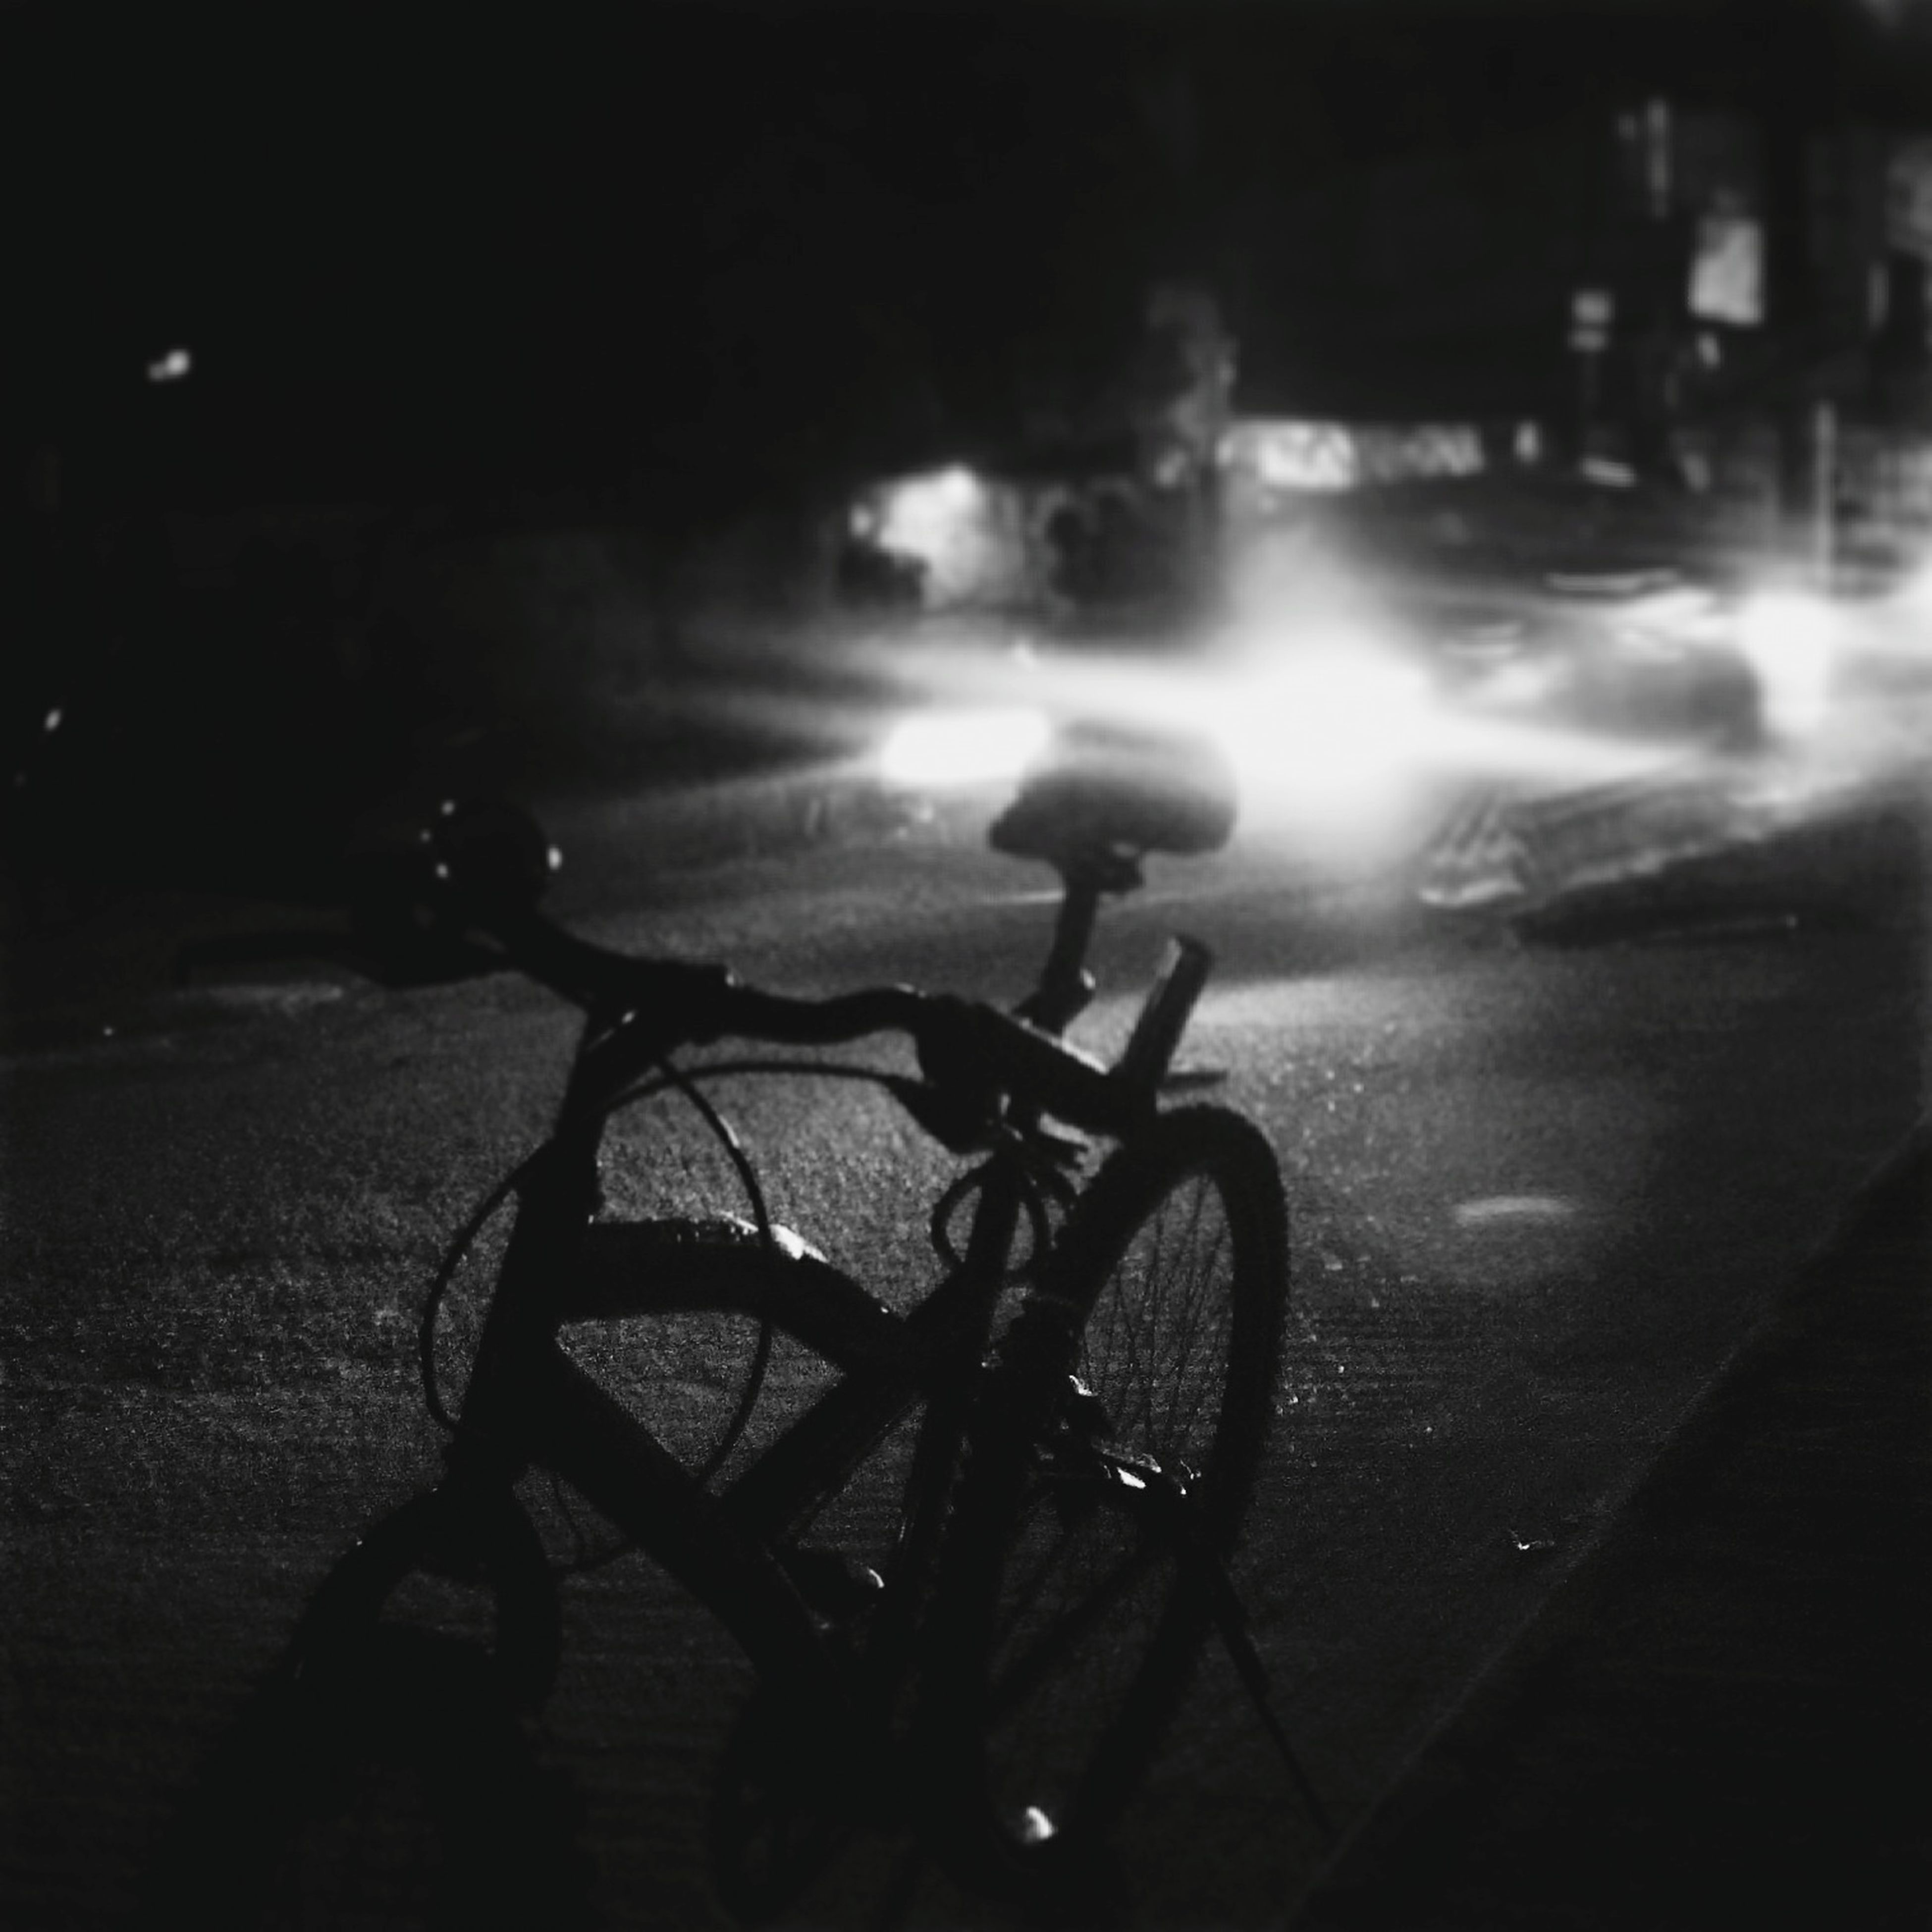 bicycle, night, land vehicle, transportation, mode of transport, illuminated, street, parking, stationary, parked, shadow, dark, sunlight, silhouette, road, car, outdoors, no people, sidewalk, absence